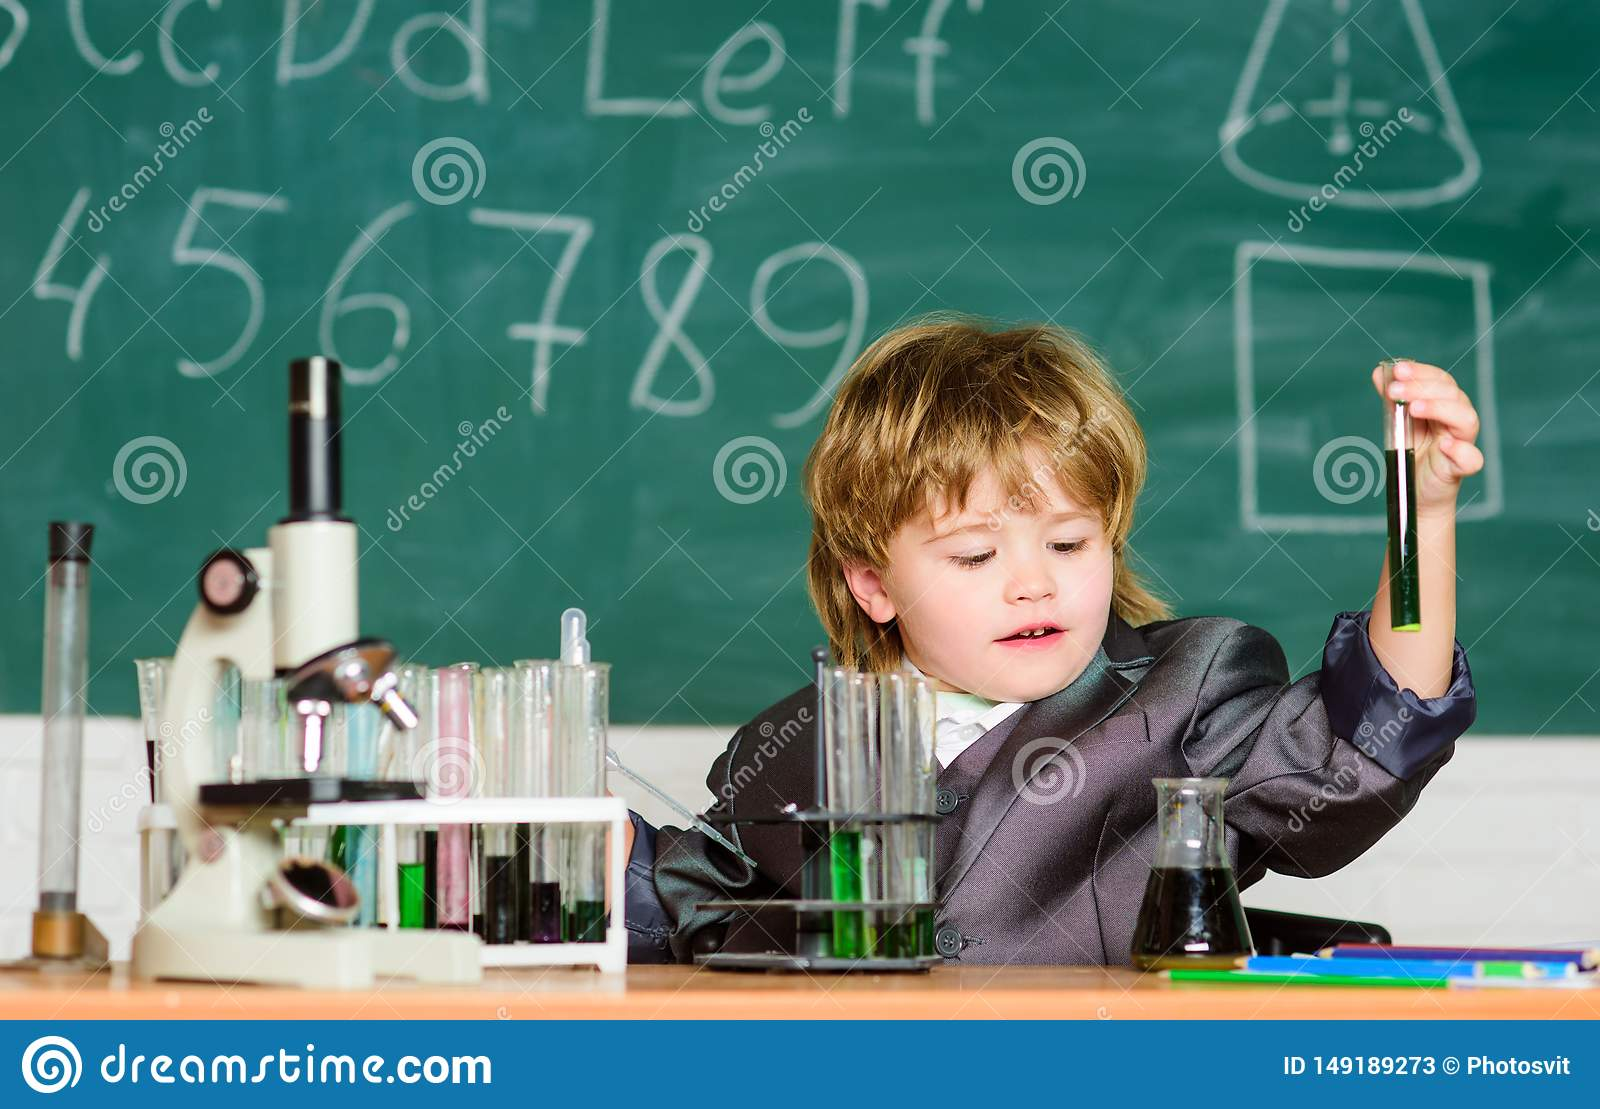 Knowledge concept. Knowledge day. Inspiration for investigations. Kid study biology chemistry. Basic knowledge primary